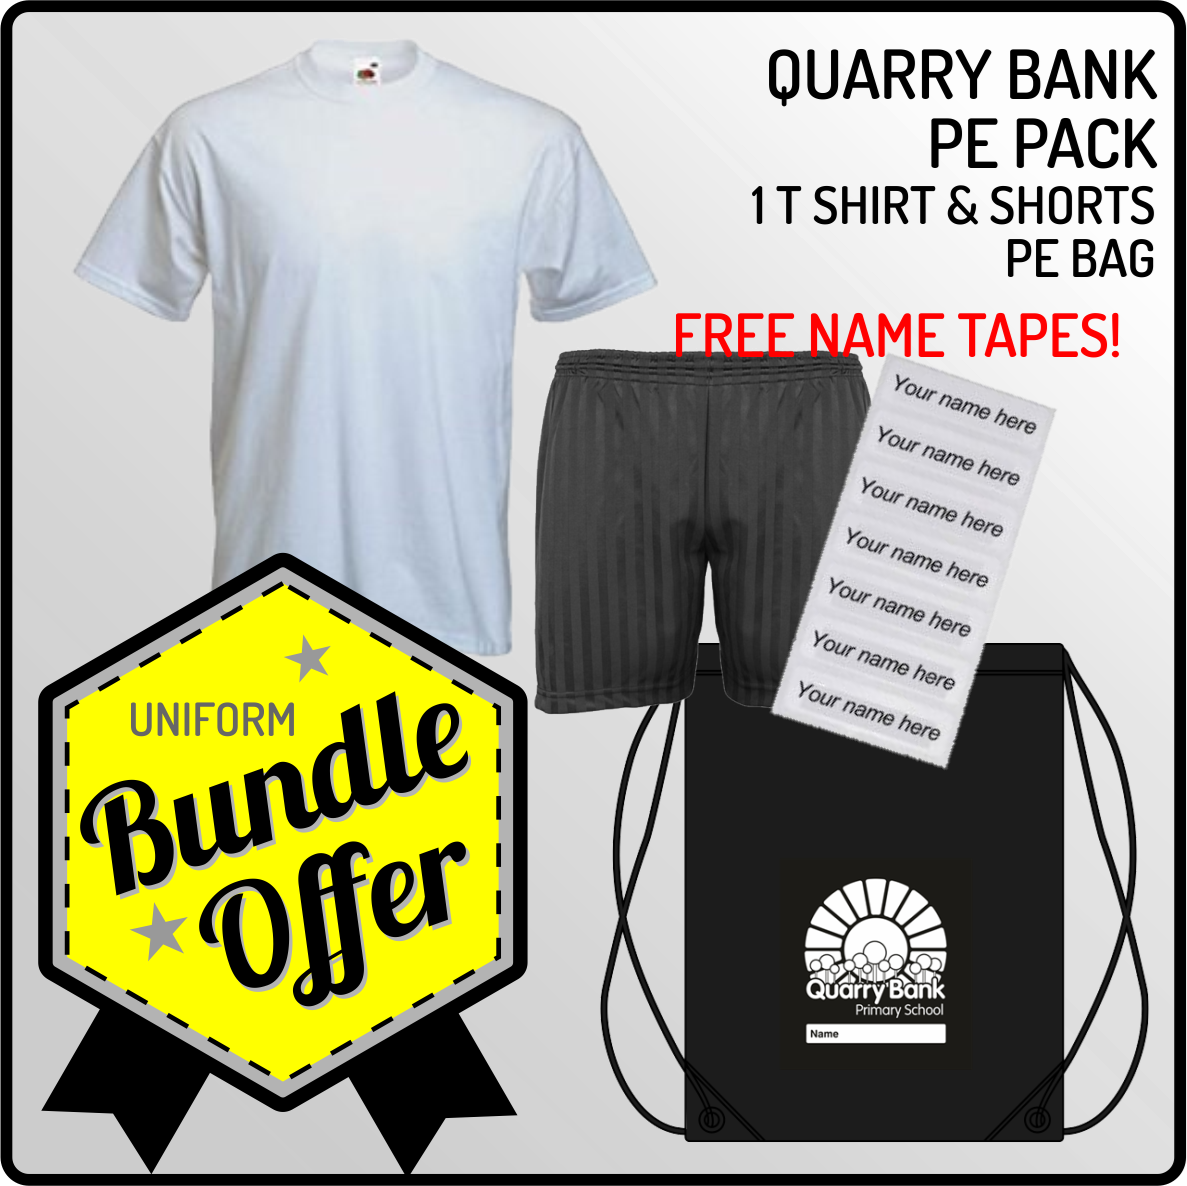 Bundle offer of T Shirt, Shorts and a PE Bag! - INCLUDES FREE NAME TAPES